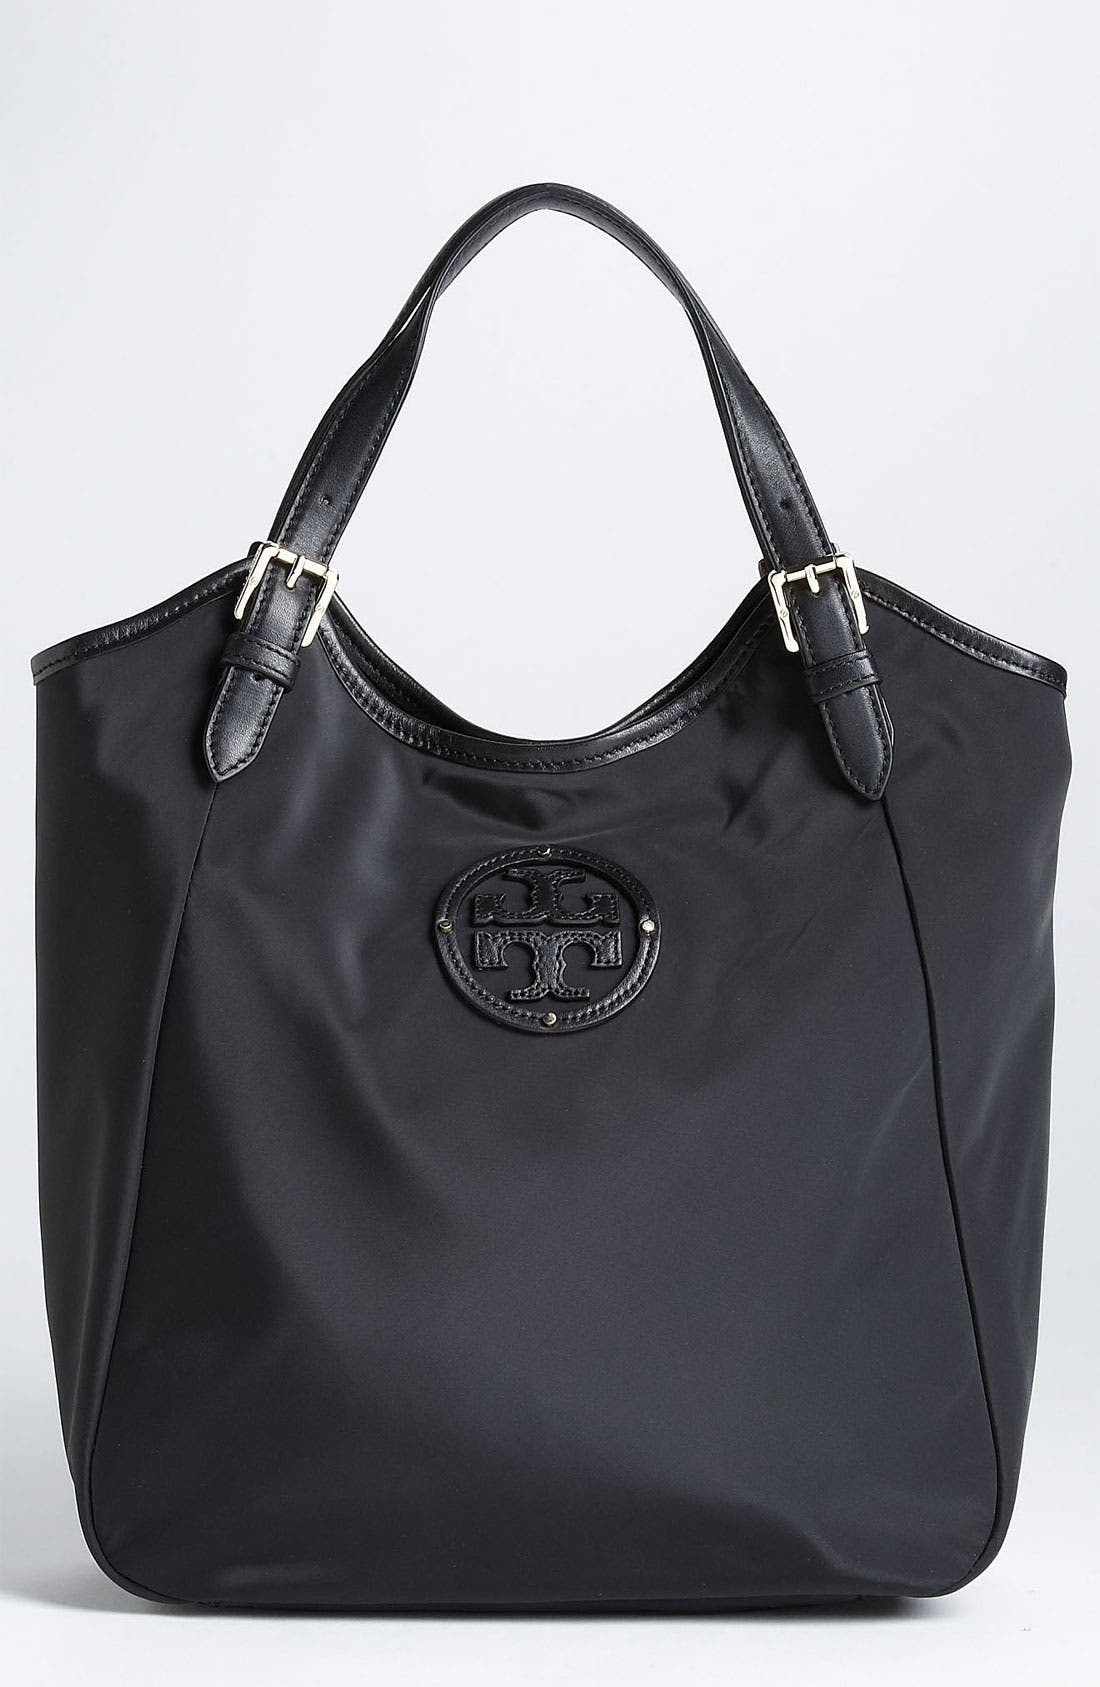 Alternate Image 1 Selected - Tory Burch 'Small' Nylon Tote